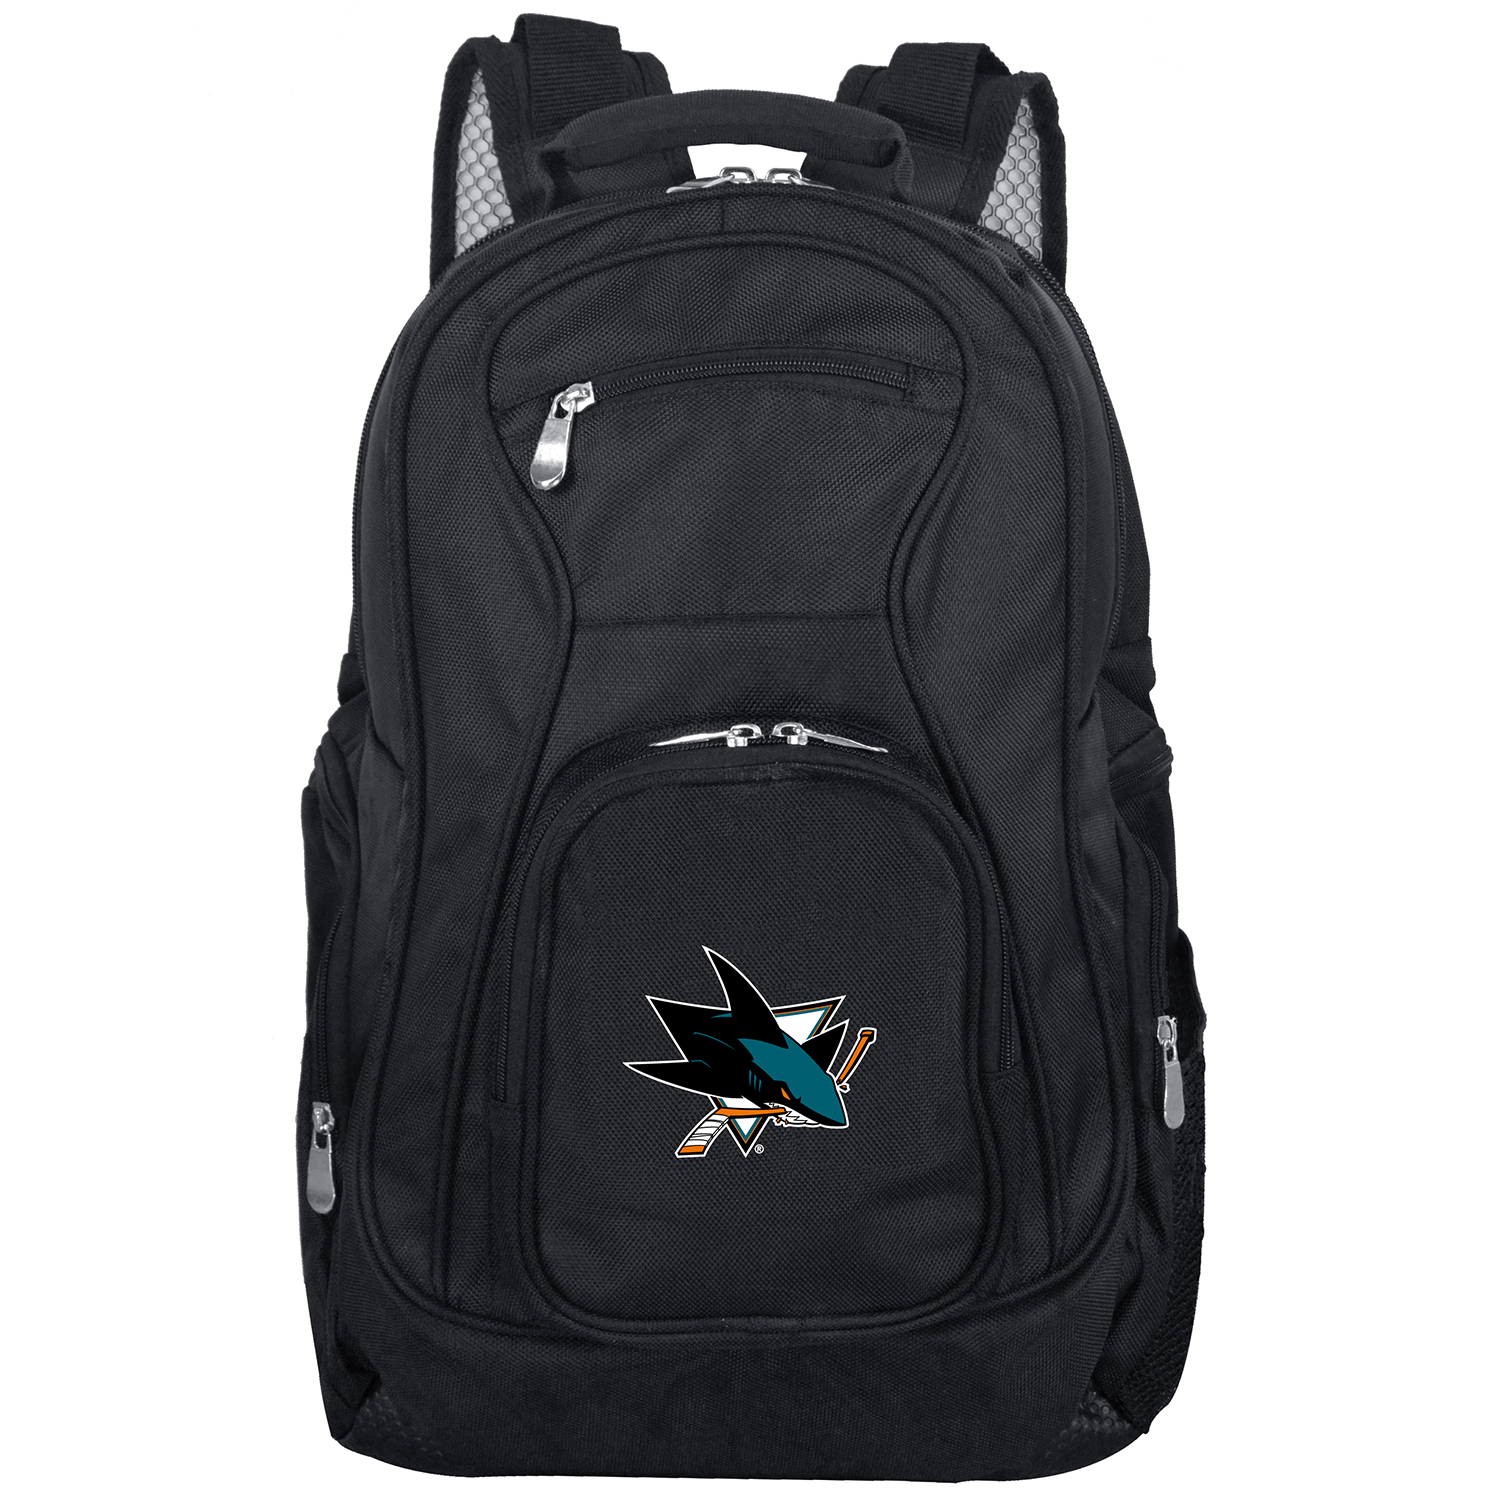 "San Jose Sharks 19"" Laptop Travel Backpack - Black - No Size"